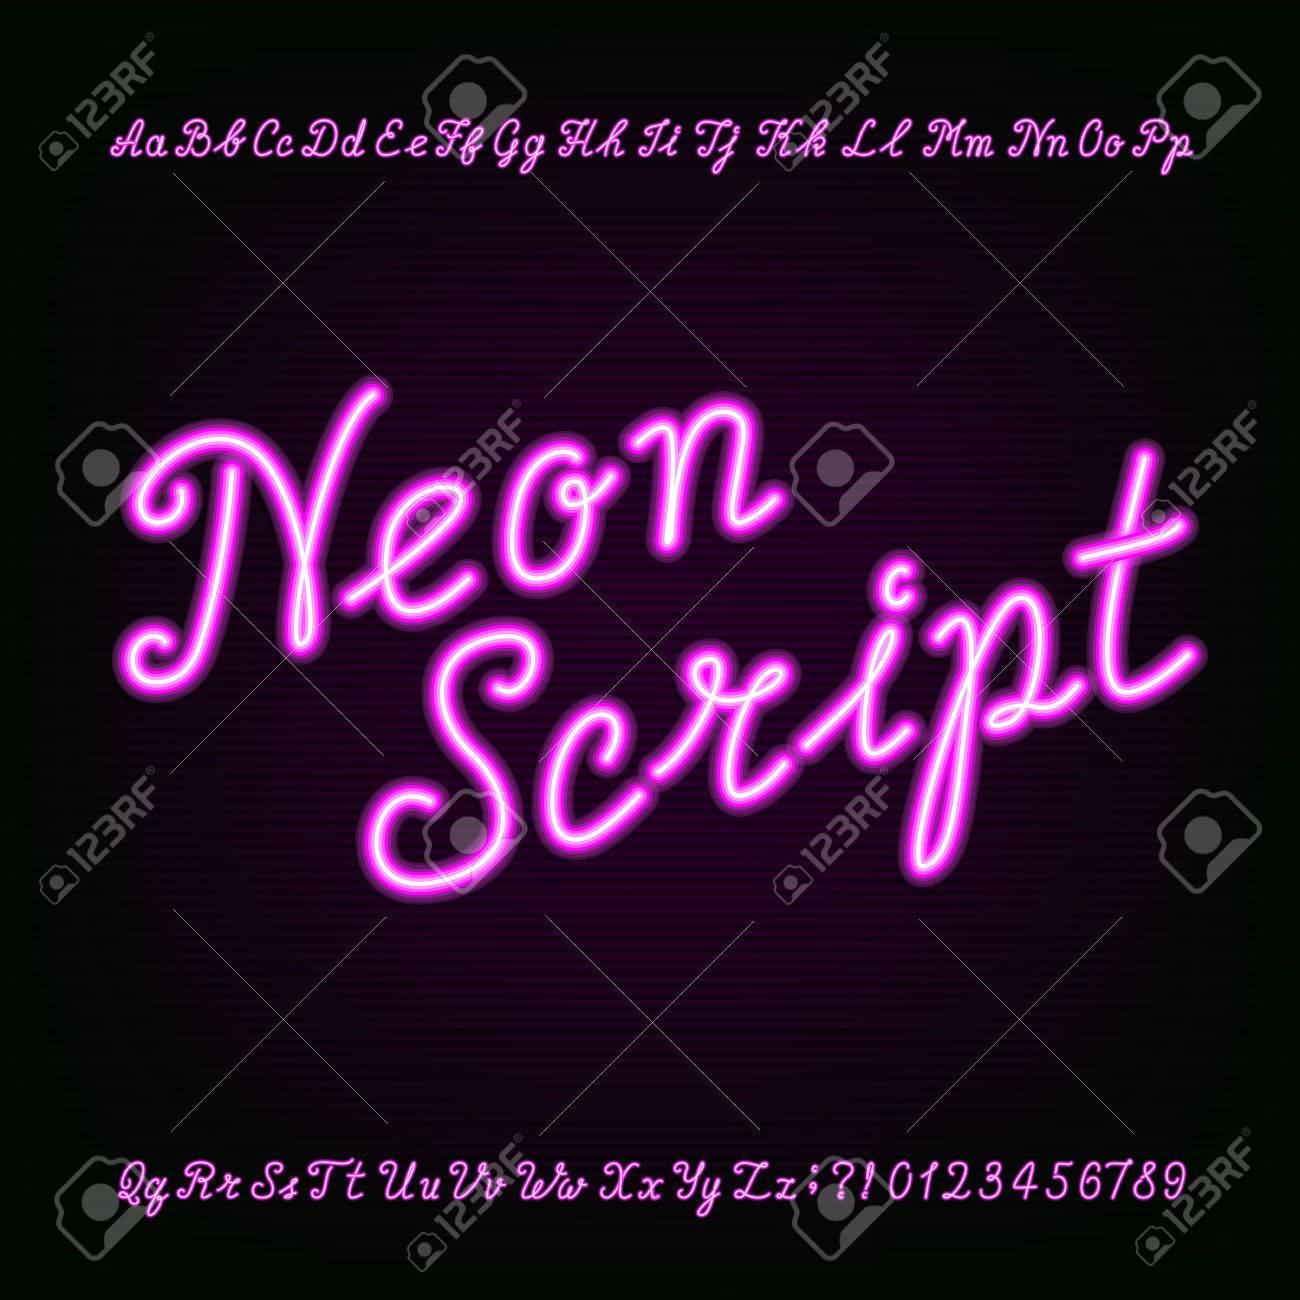 neon script hand drawn alphabet font purple neon type letters and numbers on a dark